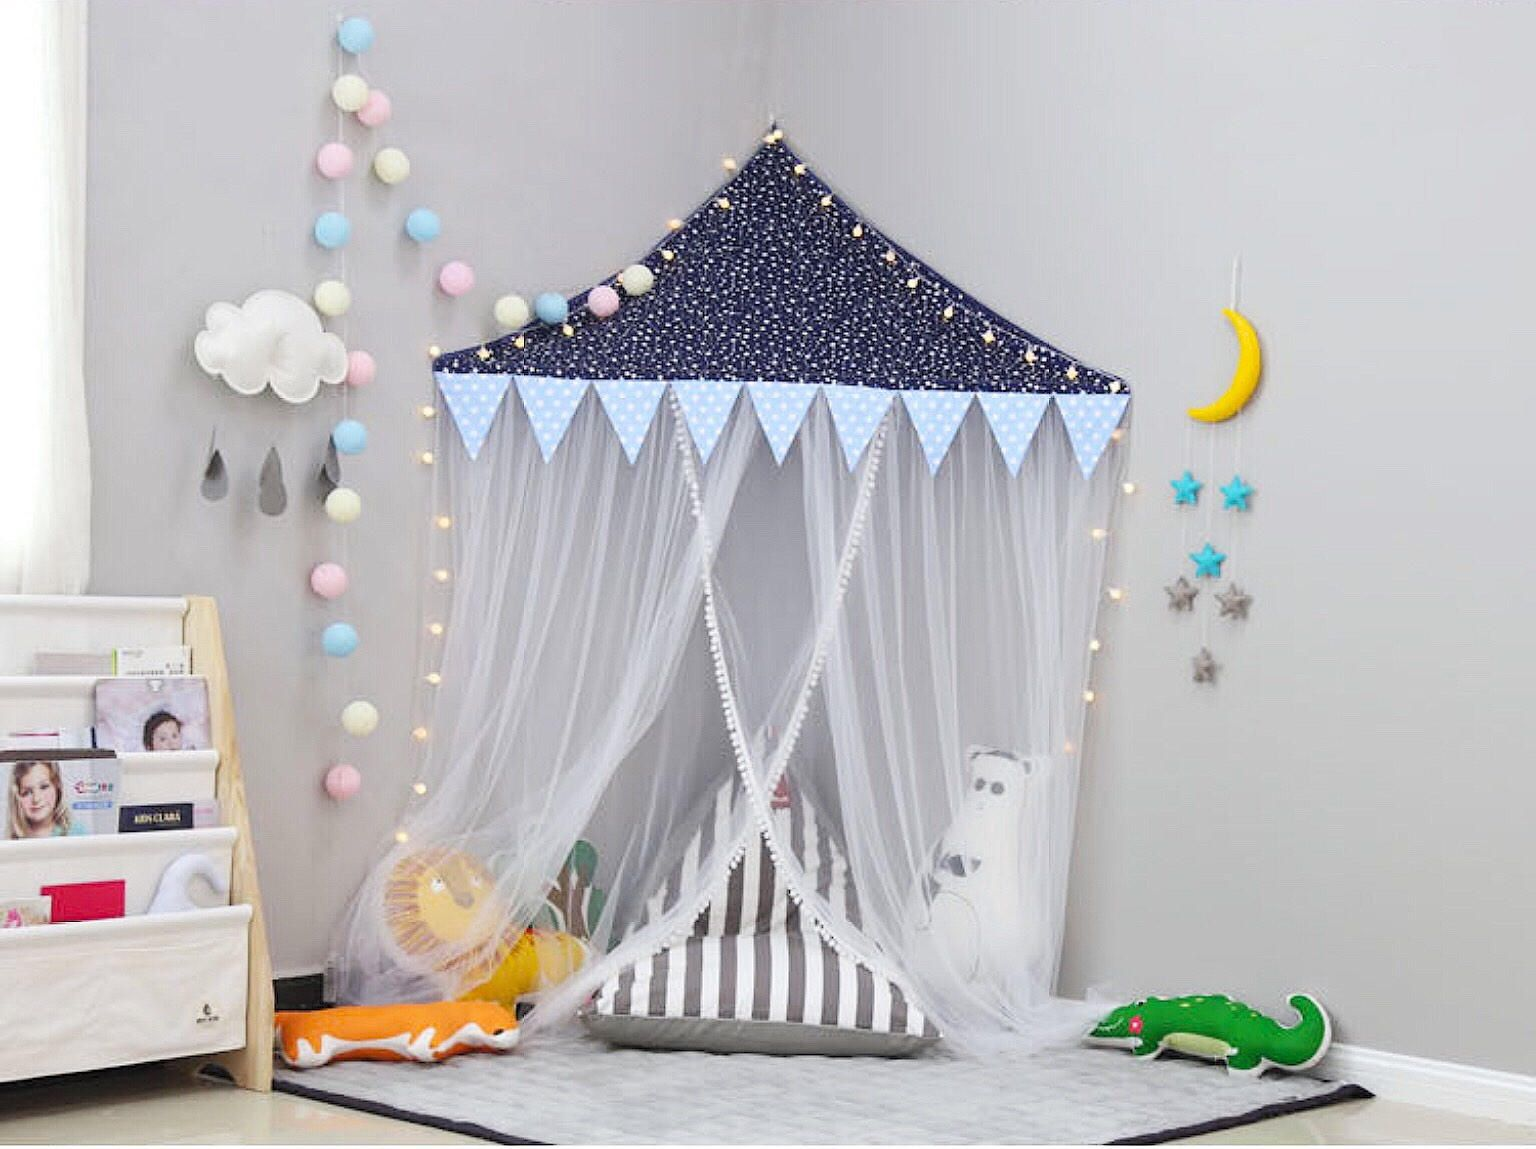 Pin By Yo Maris On Kids Baby Room Canopy Canopy Bedroom Kids Canopy